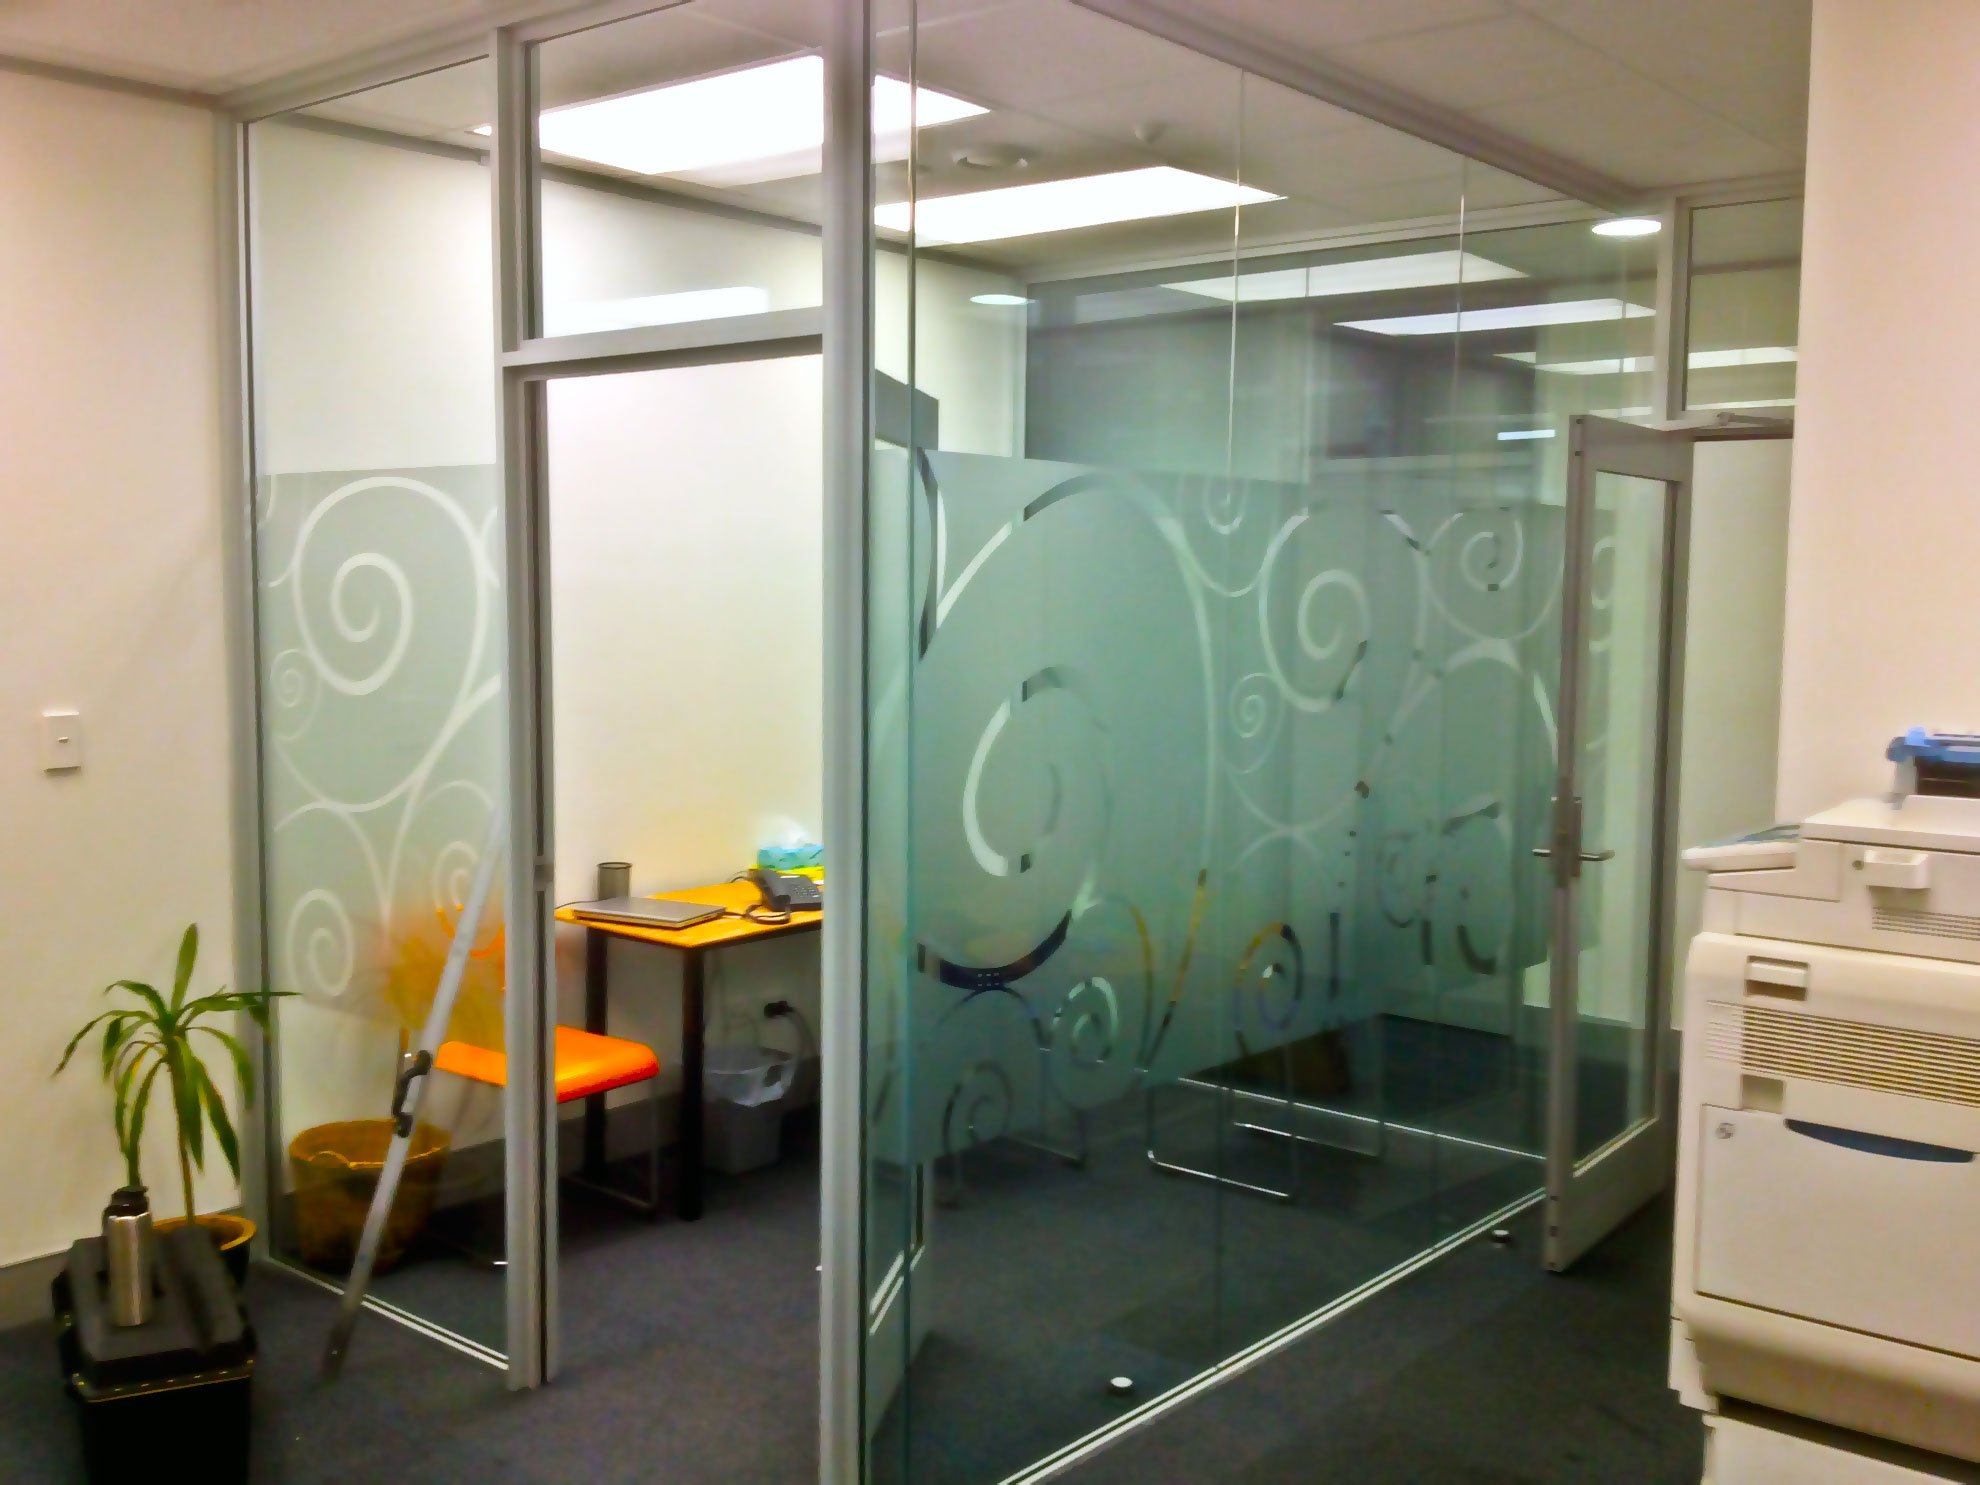 Window etch film with graphic design applied to office glazing